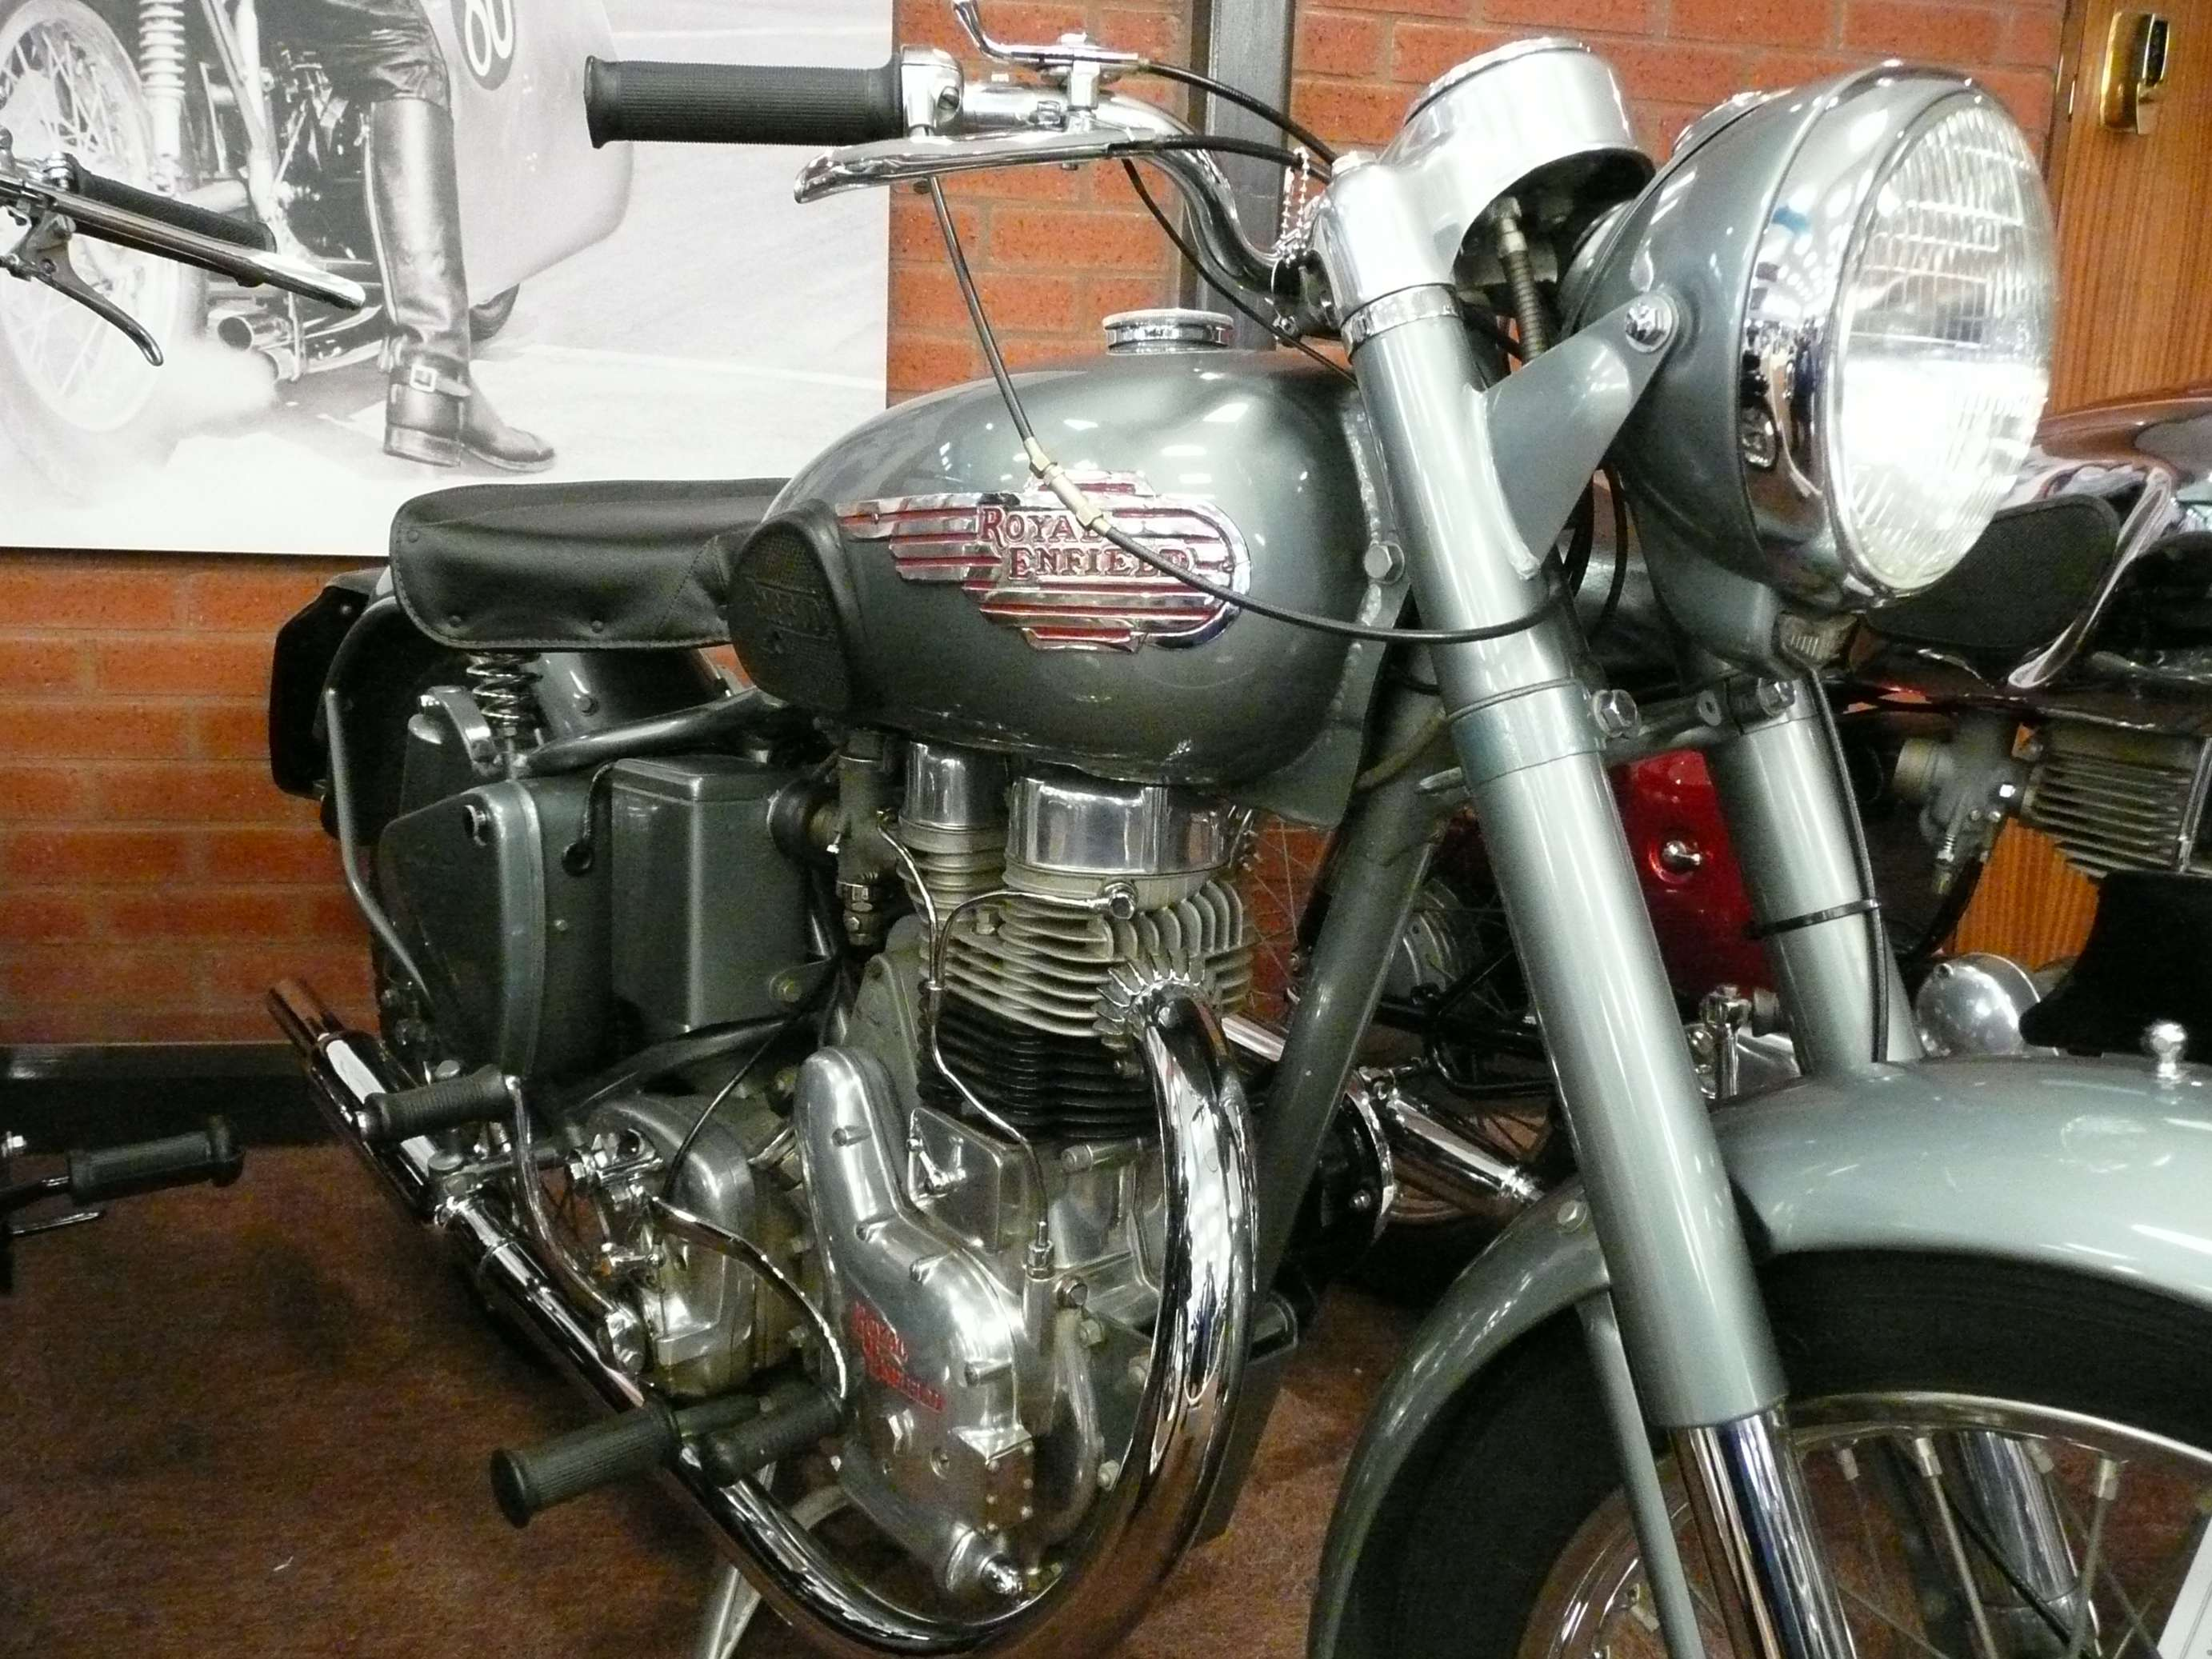 Royal Enfield Bullet 350 #8276726